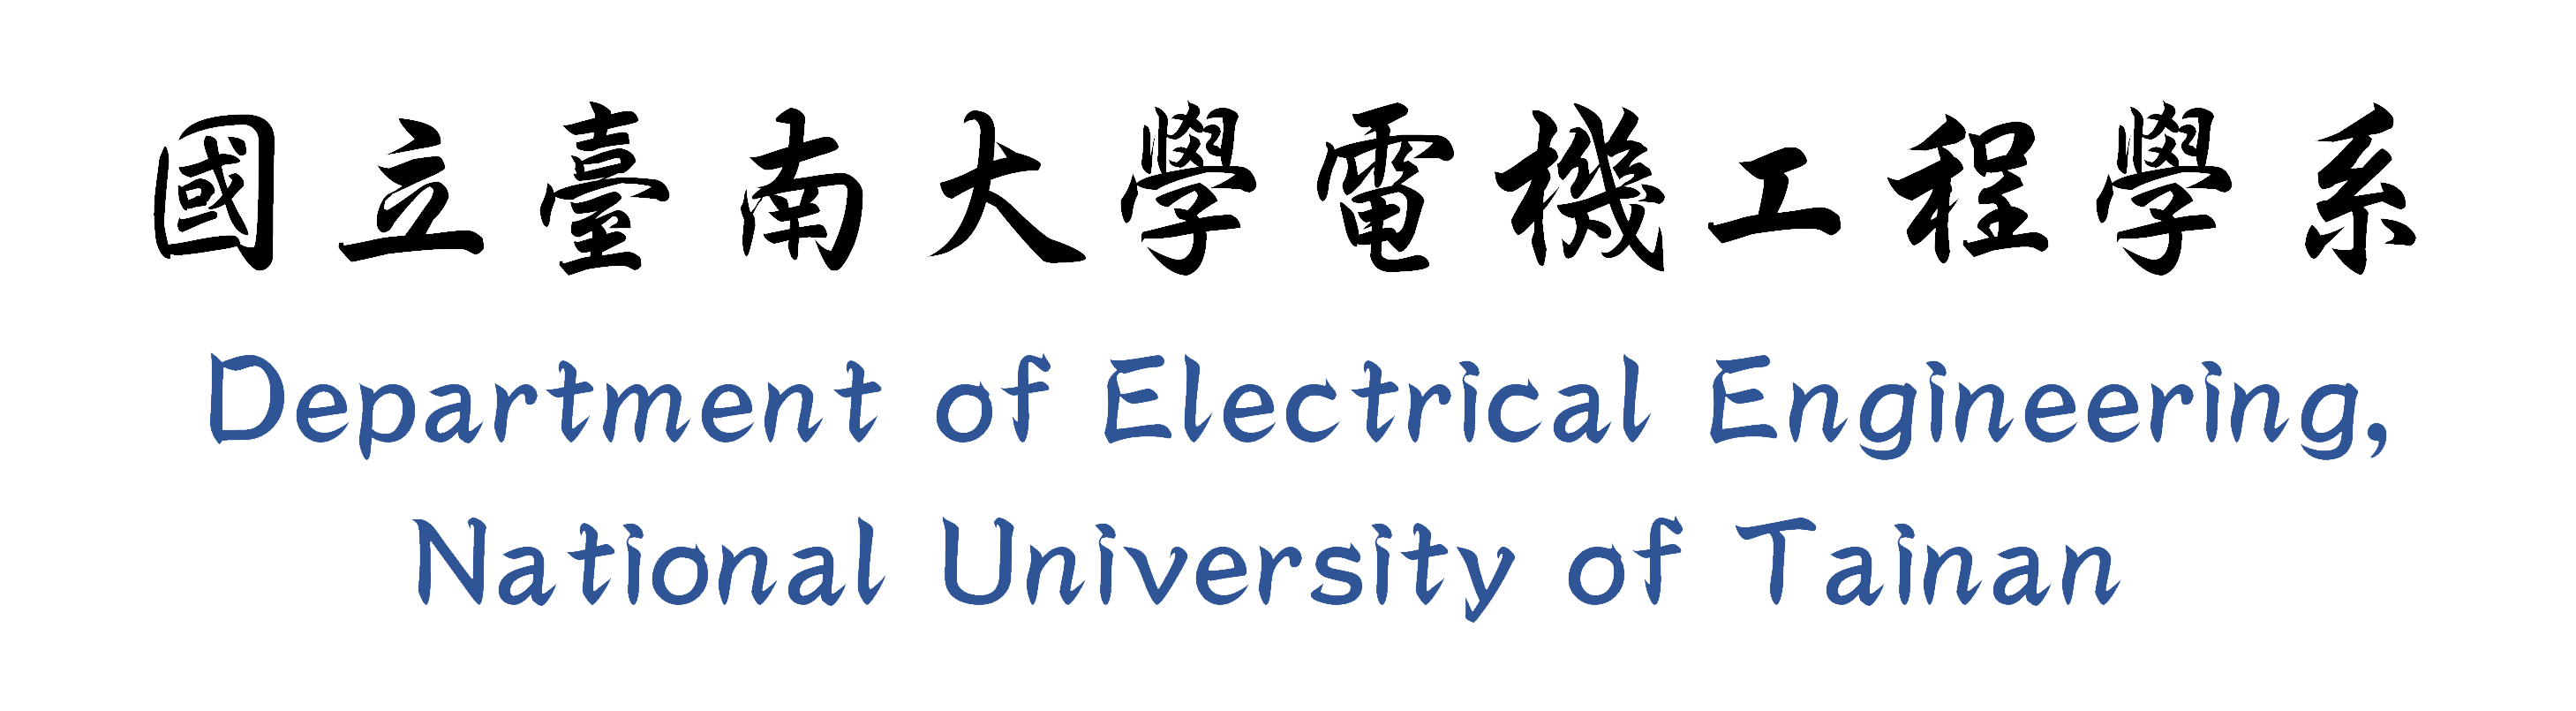 國立臺南大學電機工程學系 | Department of Electrical Engineering, NUTN